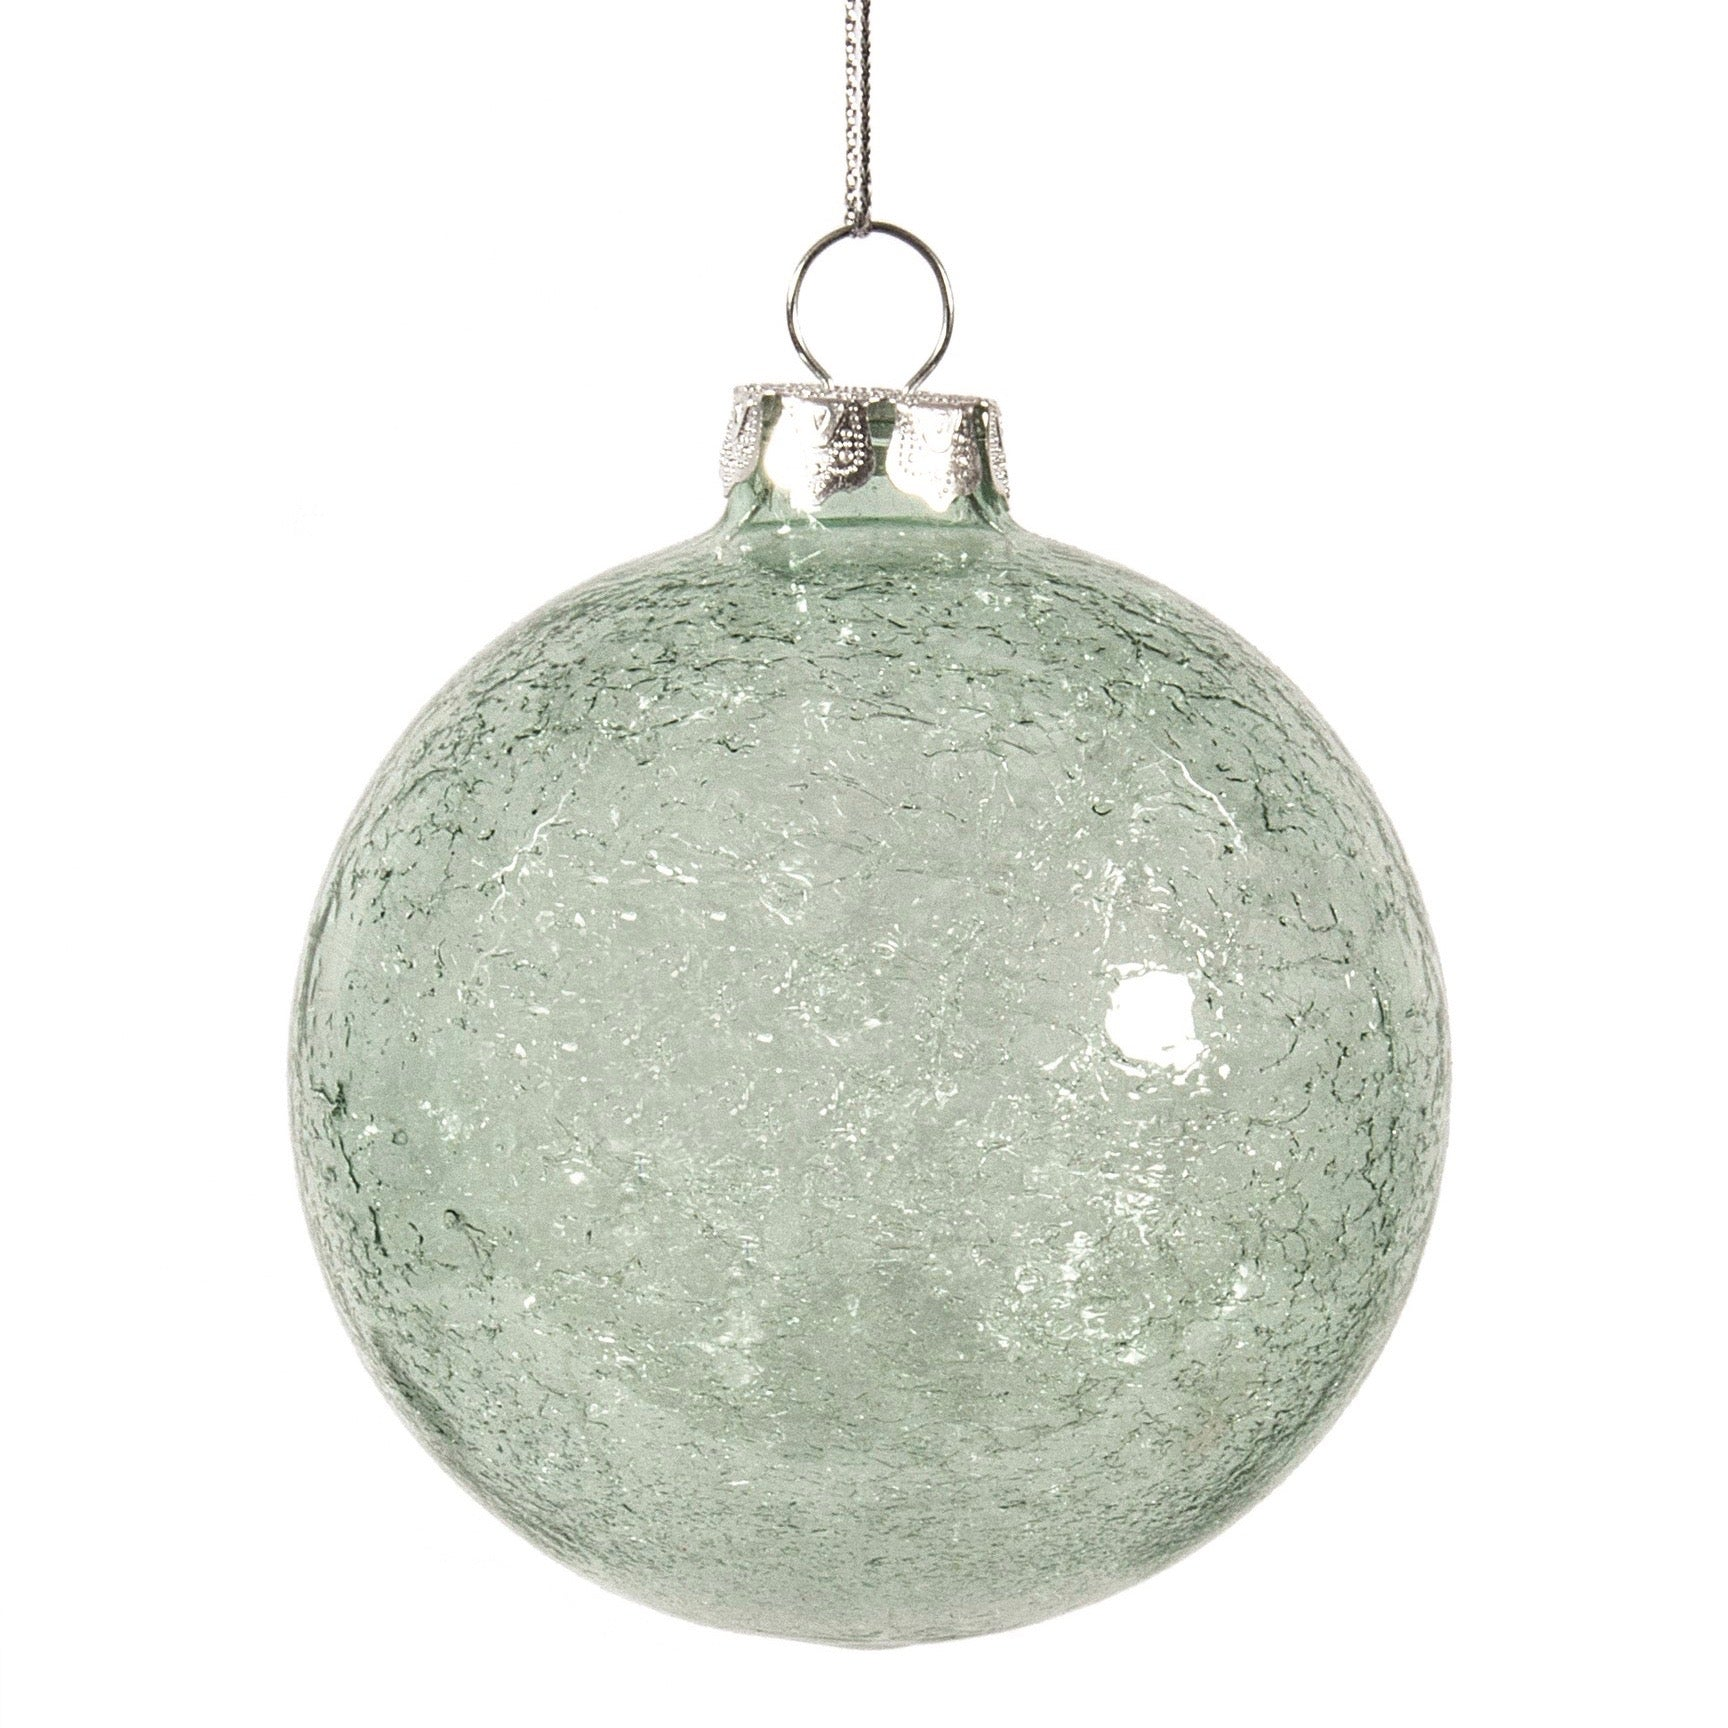 Mint Green with Iced Interior Glass Ball Ornament | Putti Christmas Decorations